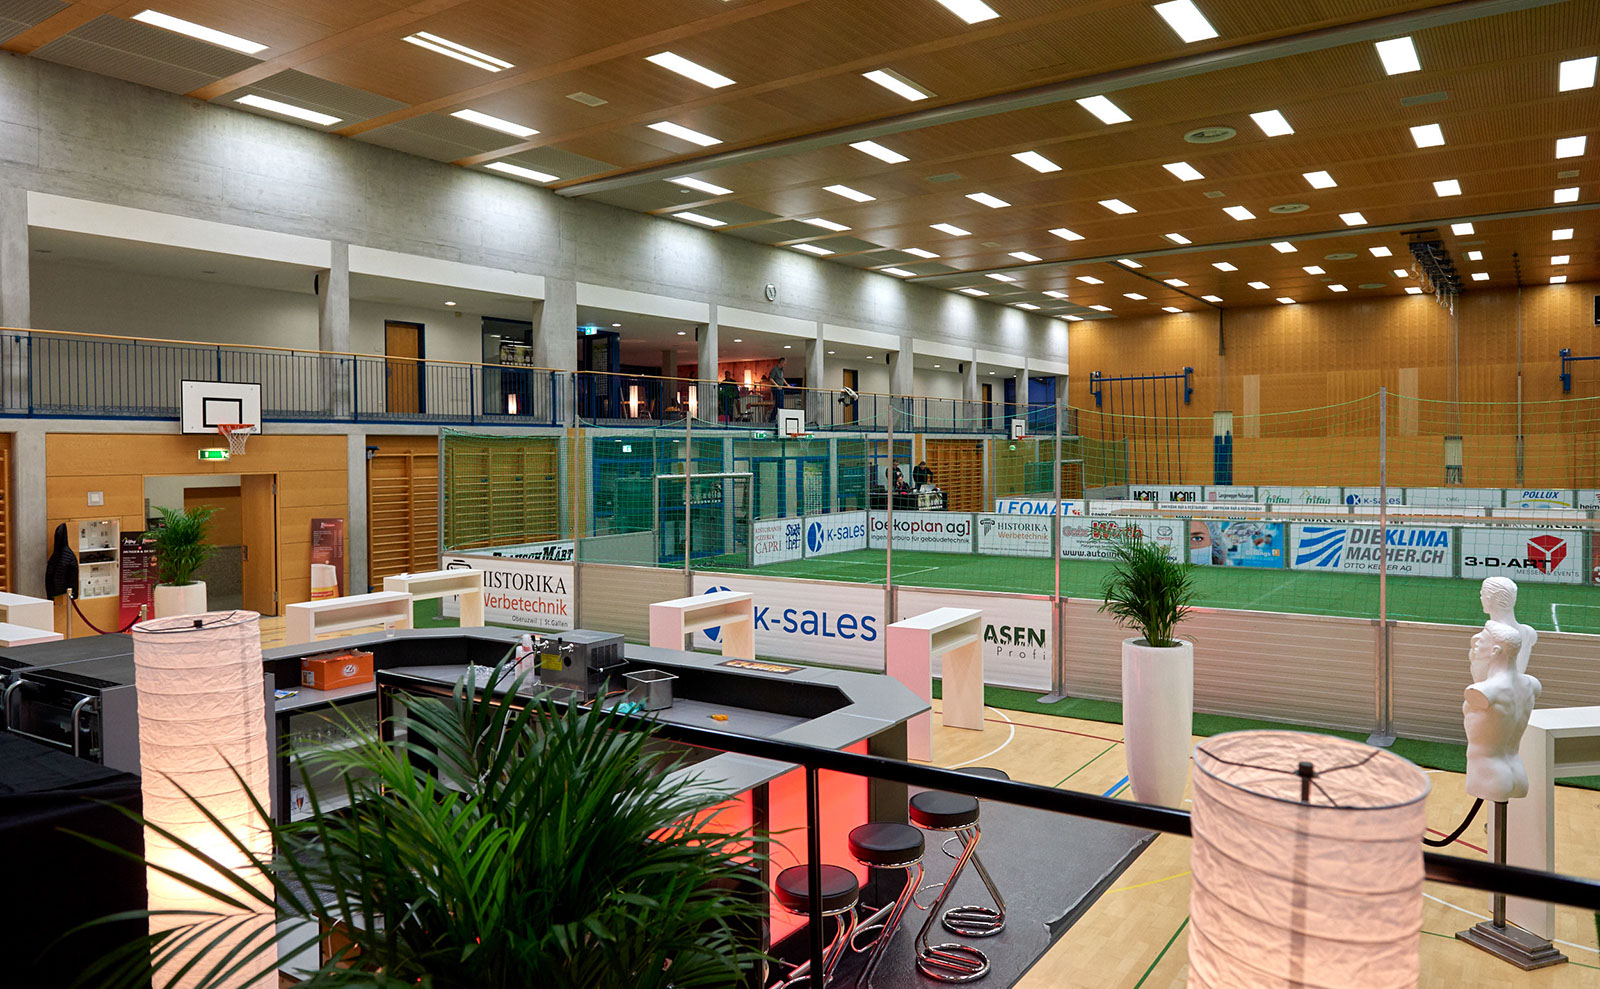 Bodensee-Cup_20171110_180215.jpg